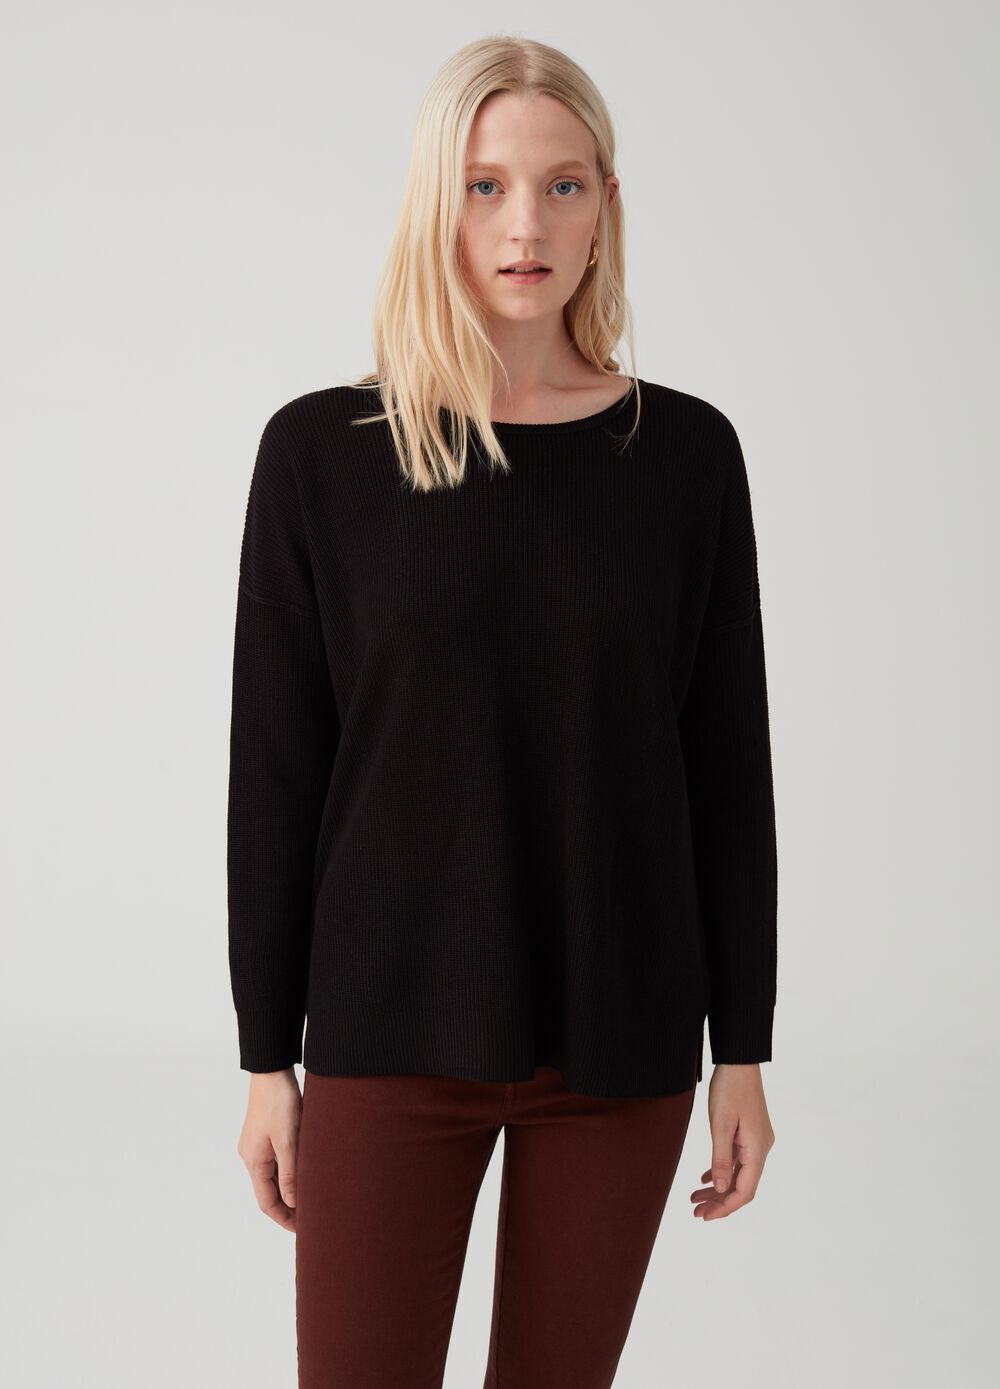 Knitted pullover with sleeves and drop shoulder